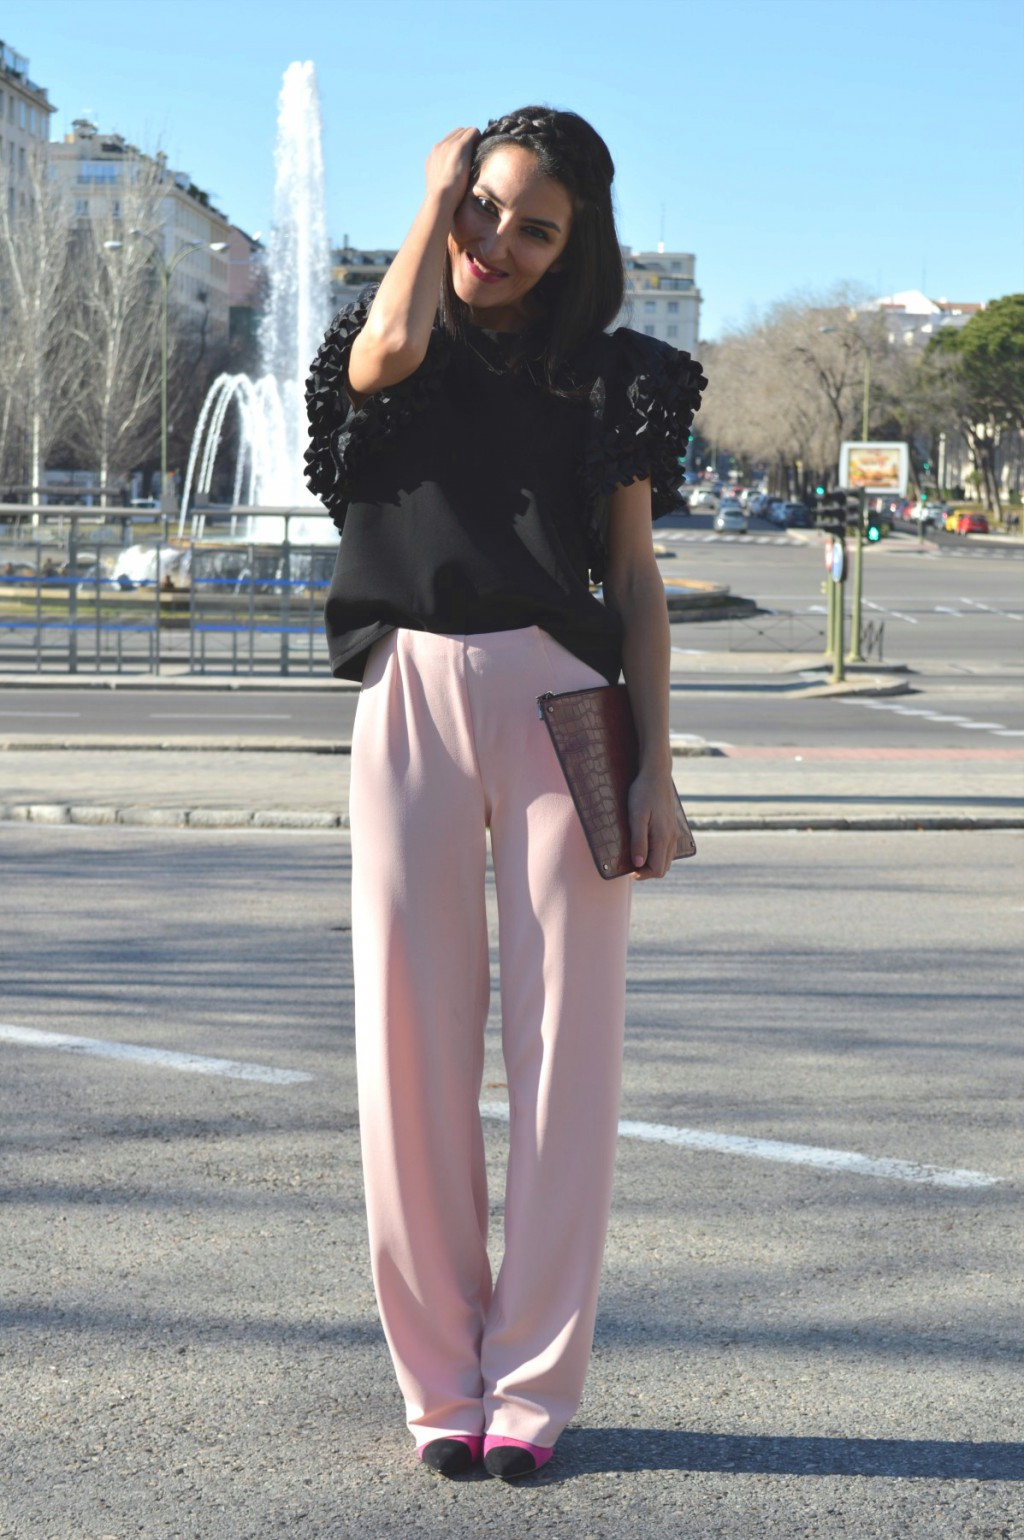 Blusa / blouse: Topshop by London Pantalón / pant: mavalise Clutch: Mango Stilettos: Primark (old) Colgante / necklace: Bershka